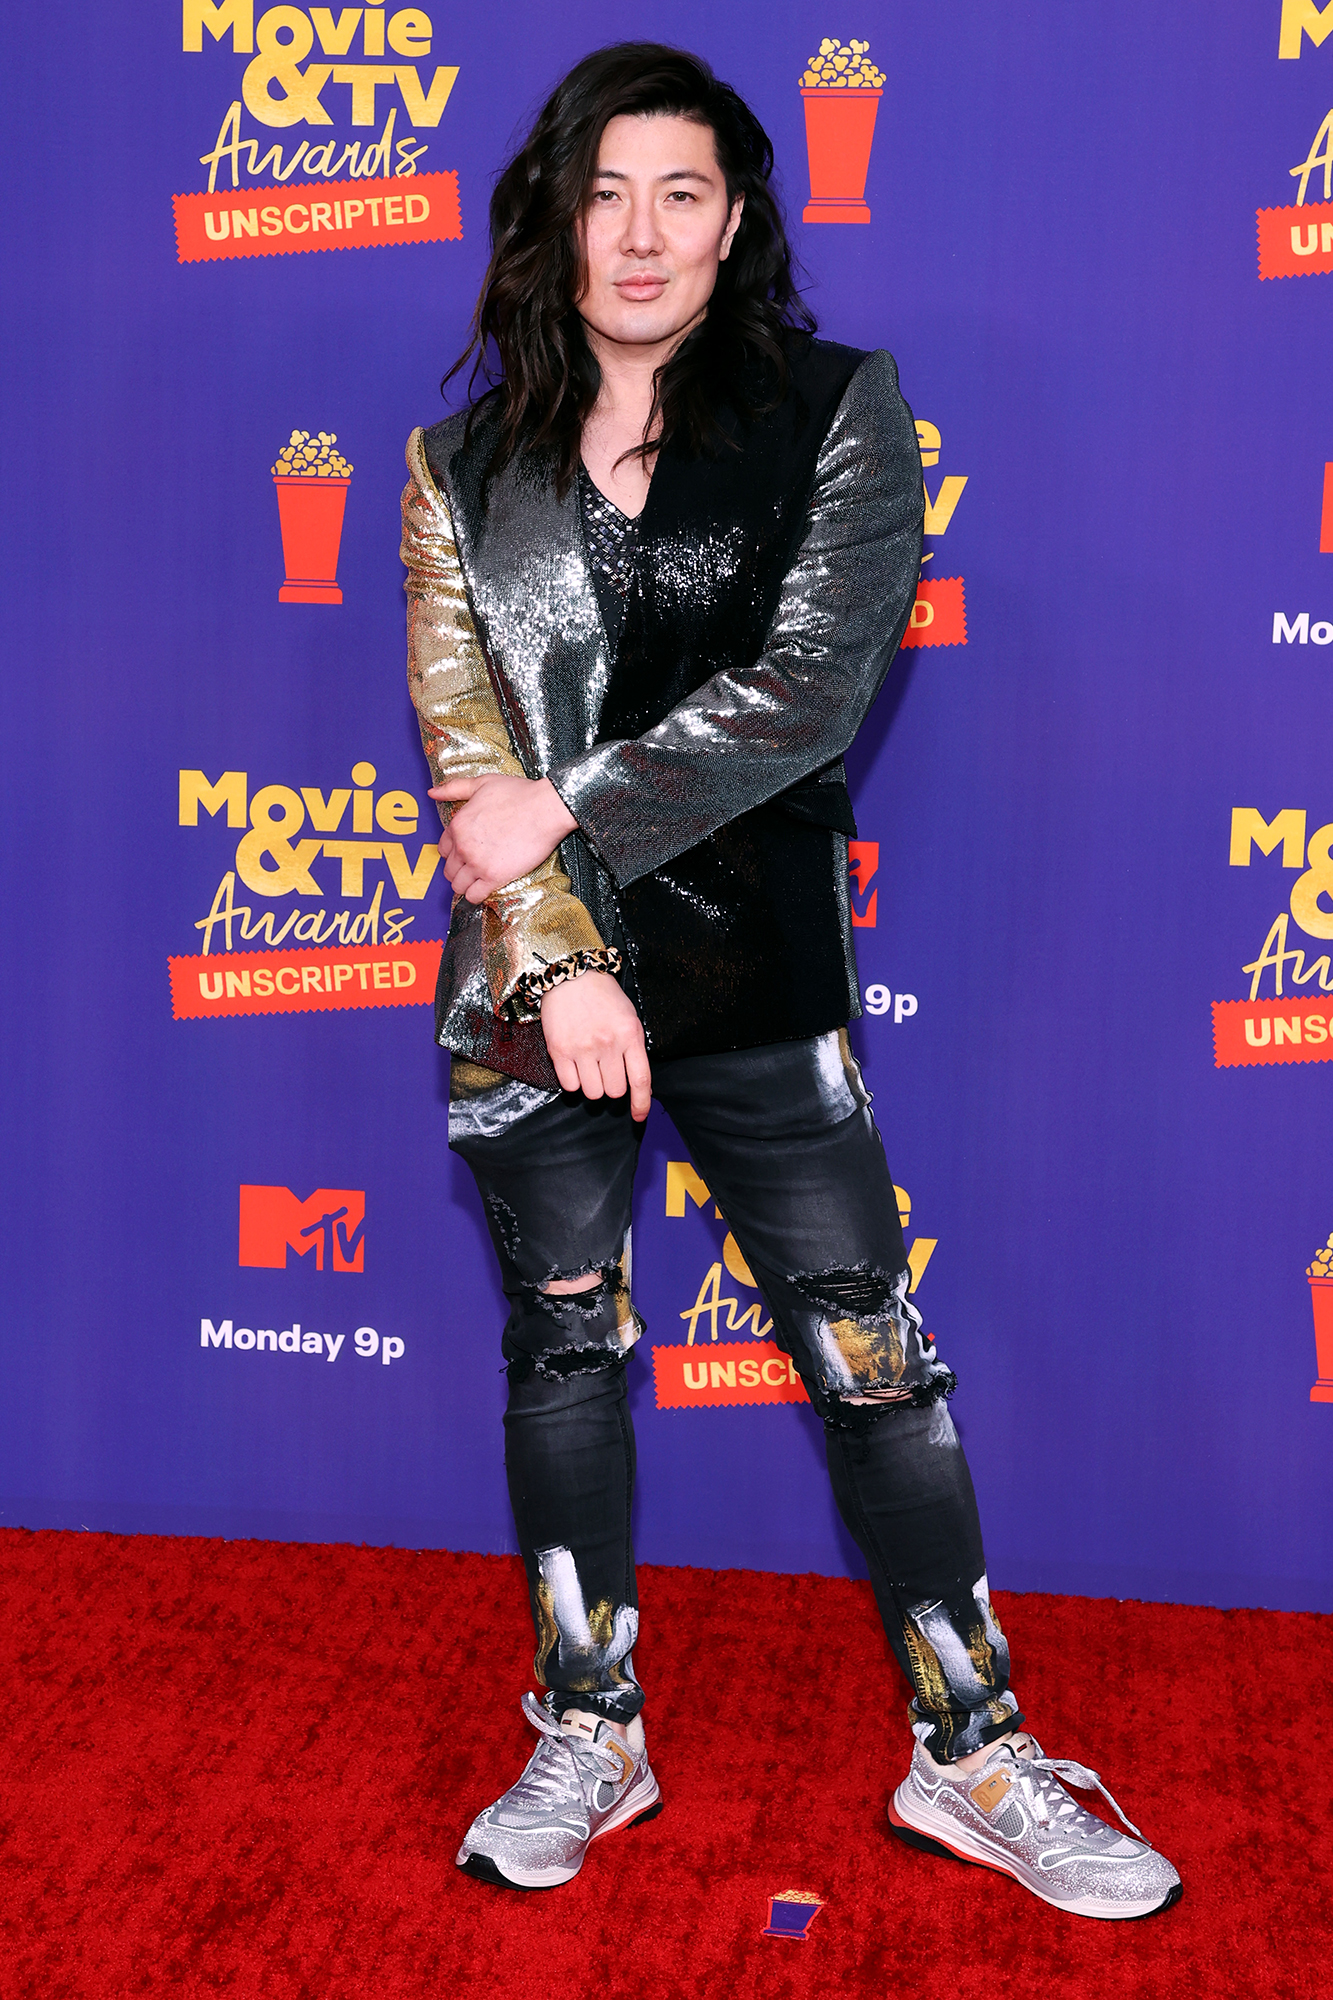 Guy Tang -- 2021 MTV Movie & TV Awards: UNSCRIPTED - Arrivals